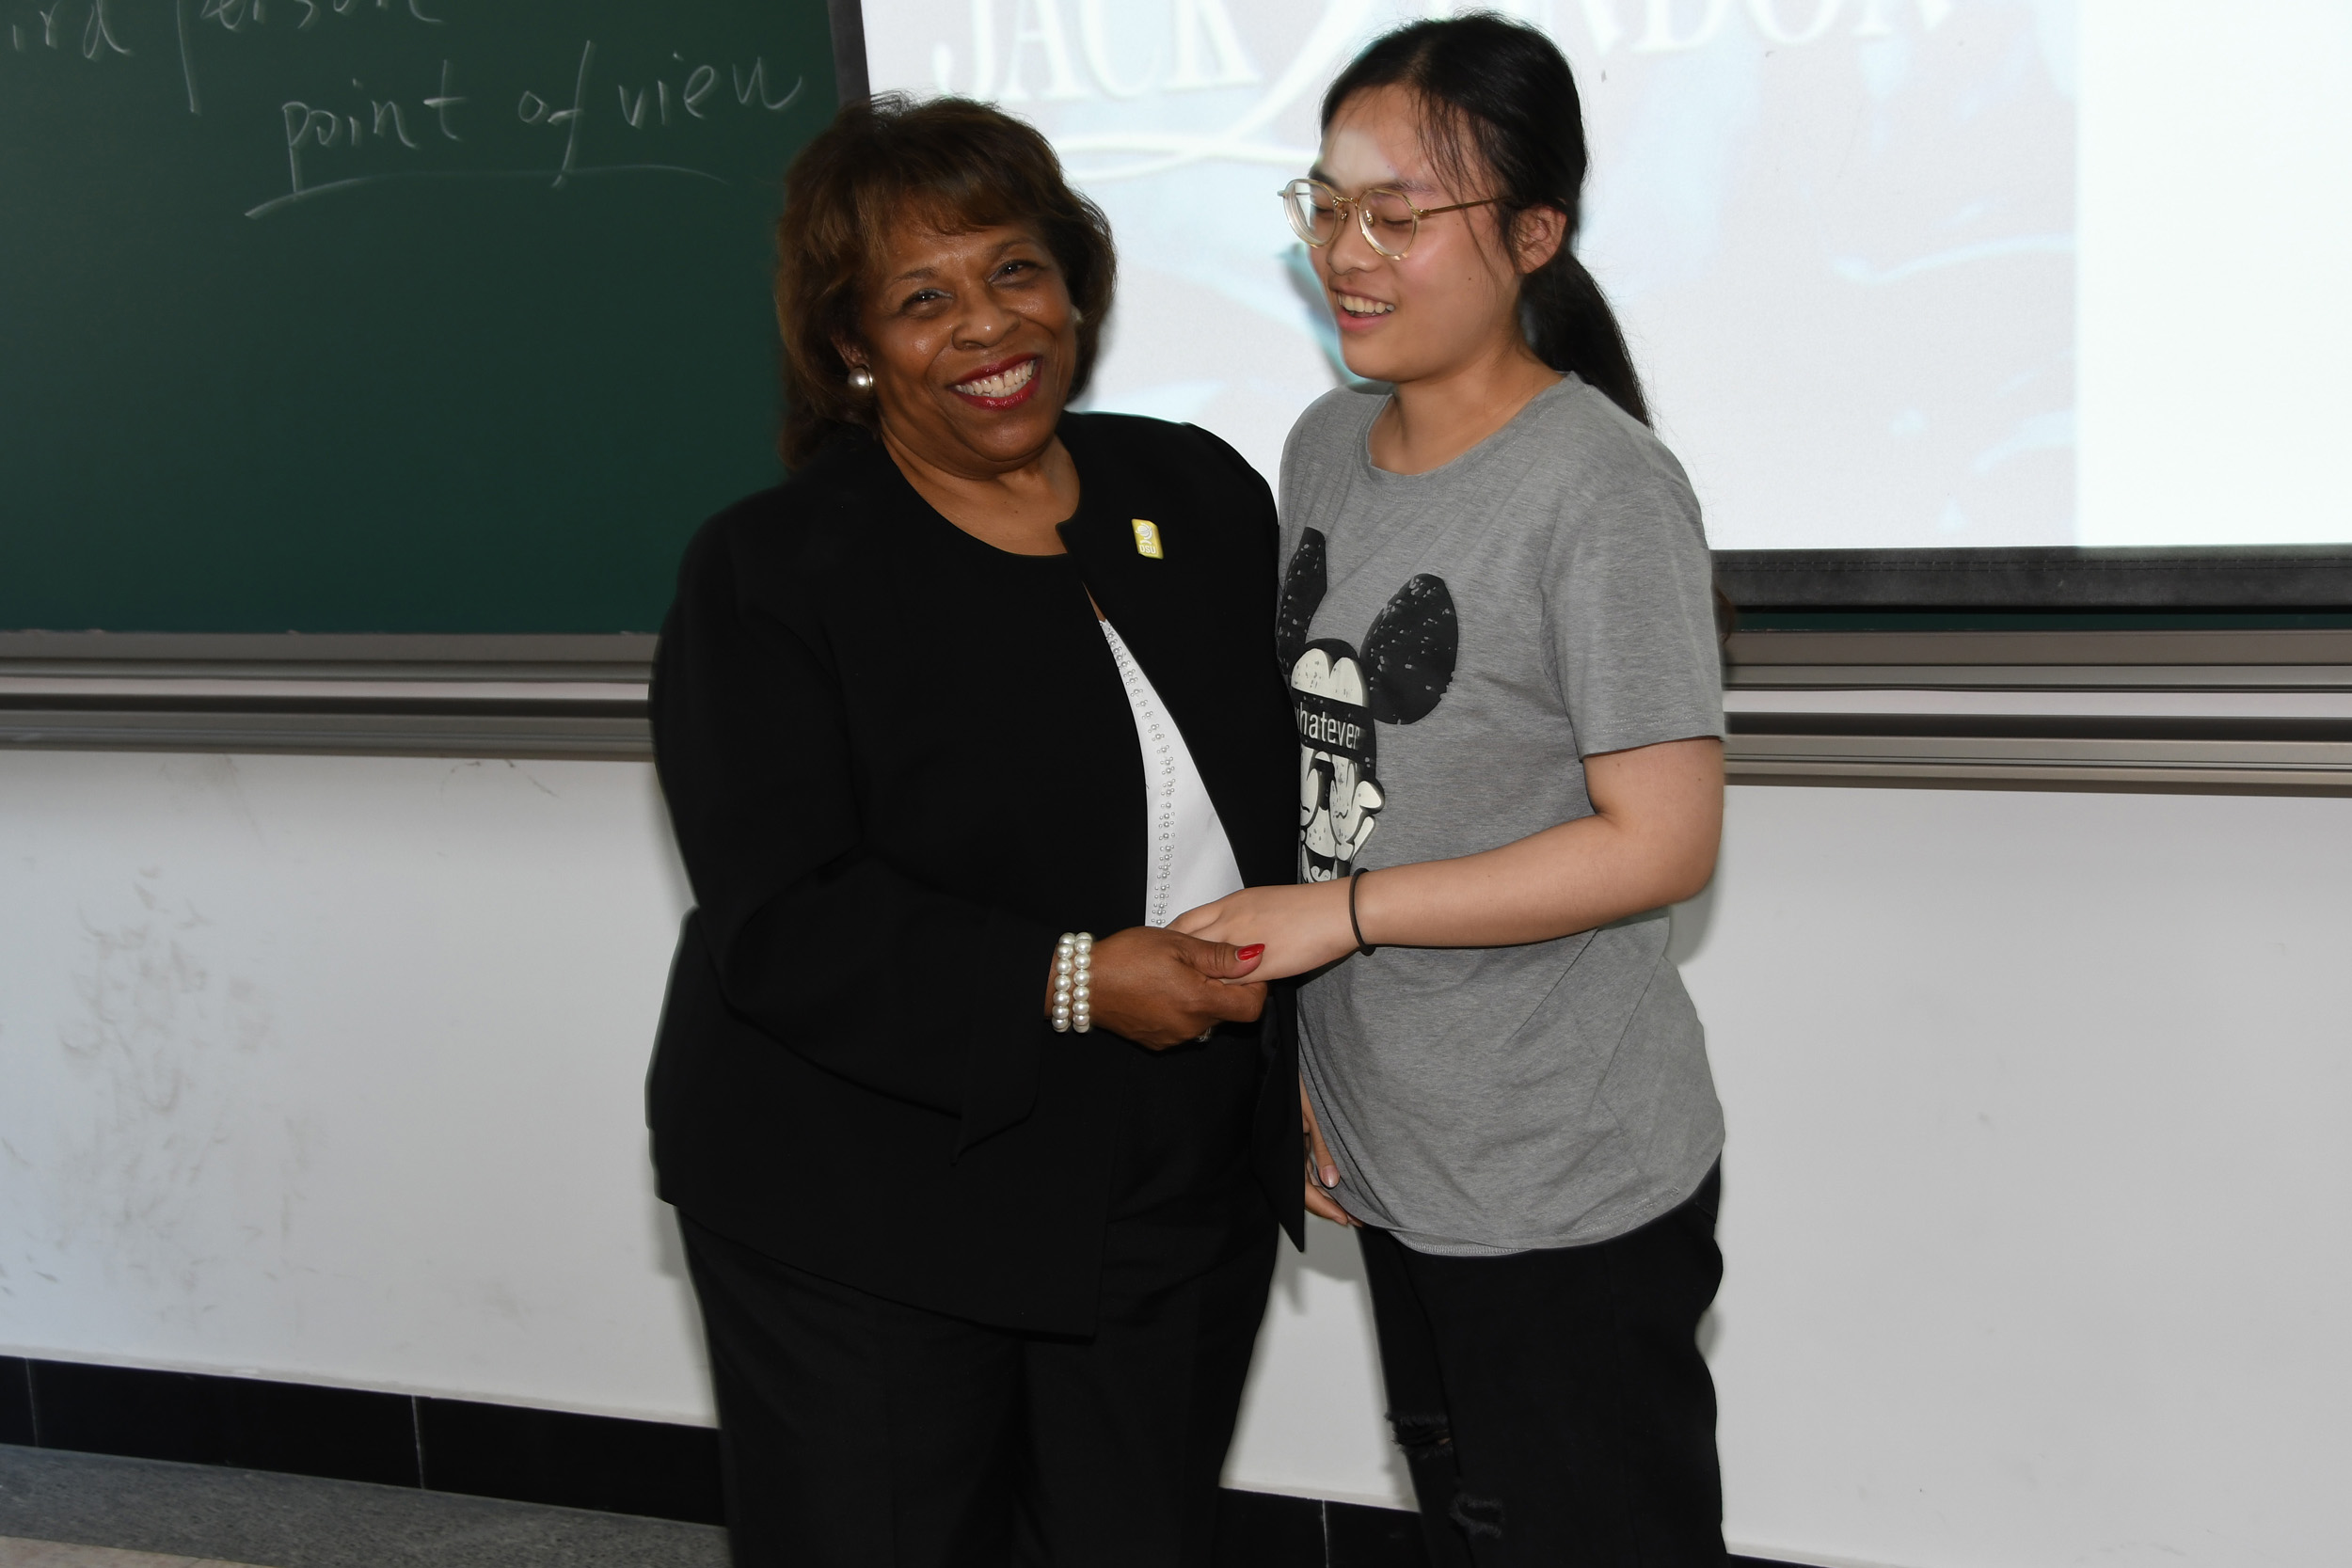 Dr. Wilma Mishoe poses with a unidentified freshman accounting student.